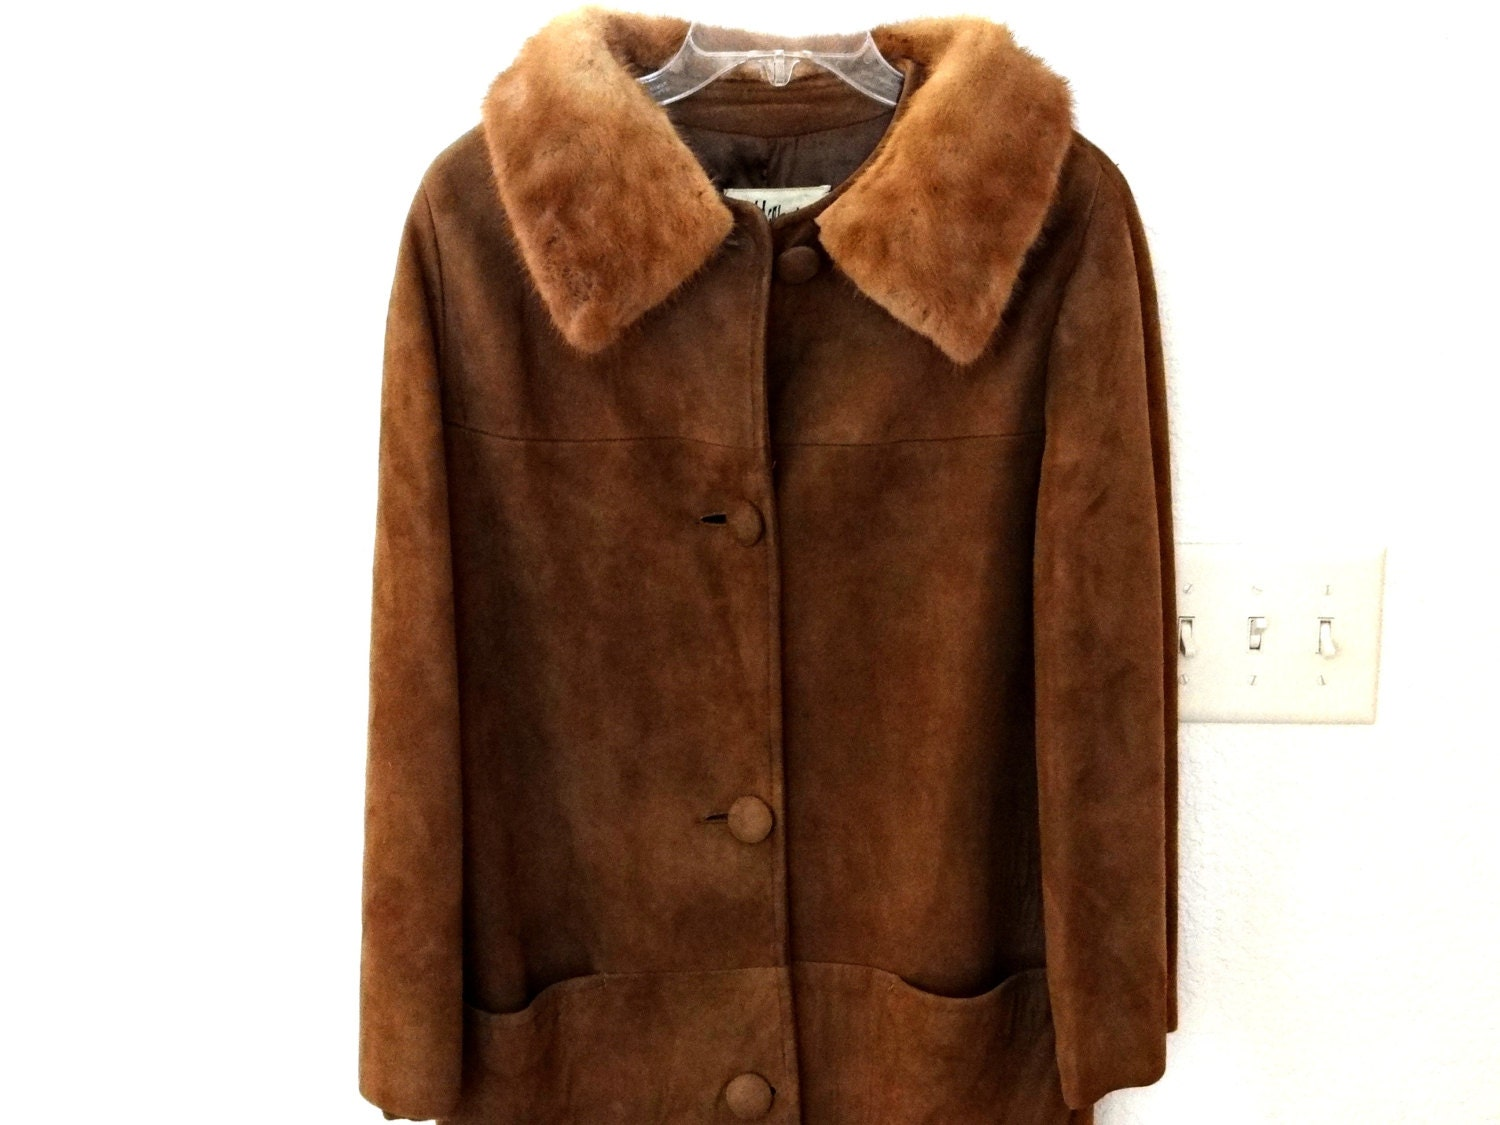 Vintage Brown Suede Faux Fur Jacket. Amazing vintage suede coat with faux fur lining. Can be zipped shut. Vintage coat in great condition. This is a ladies size 12 shown on a size 10, 5ftPrice: £